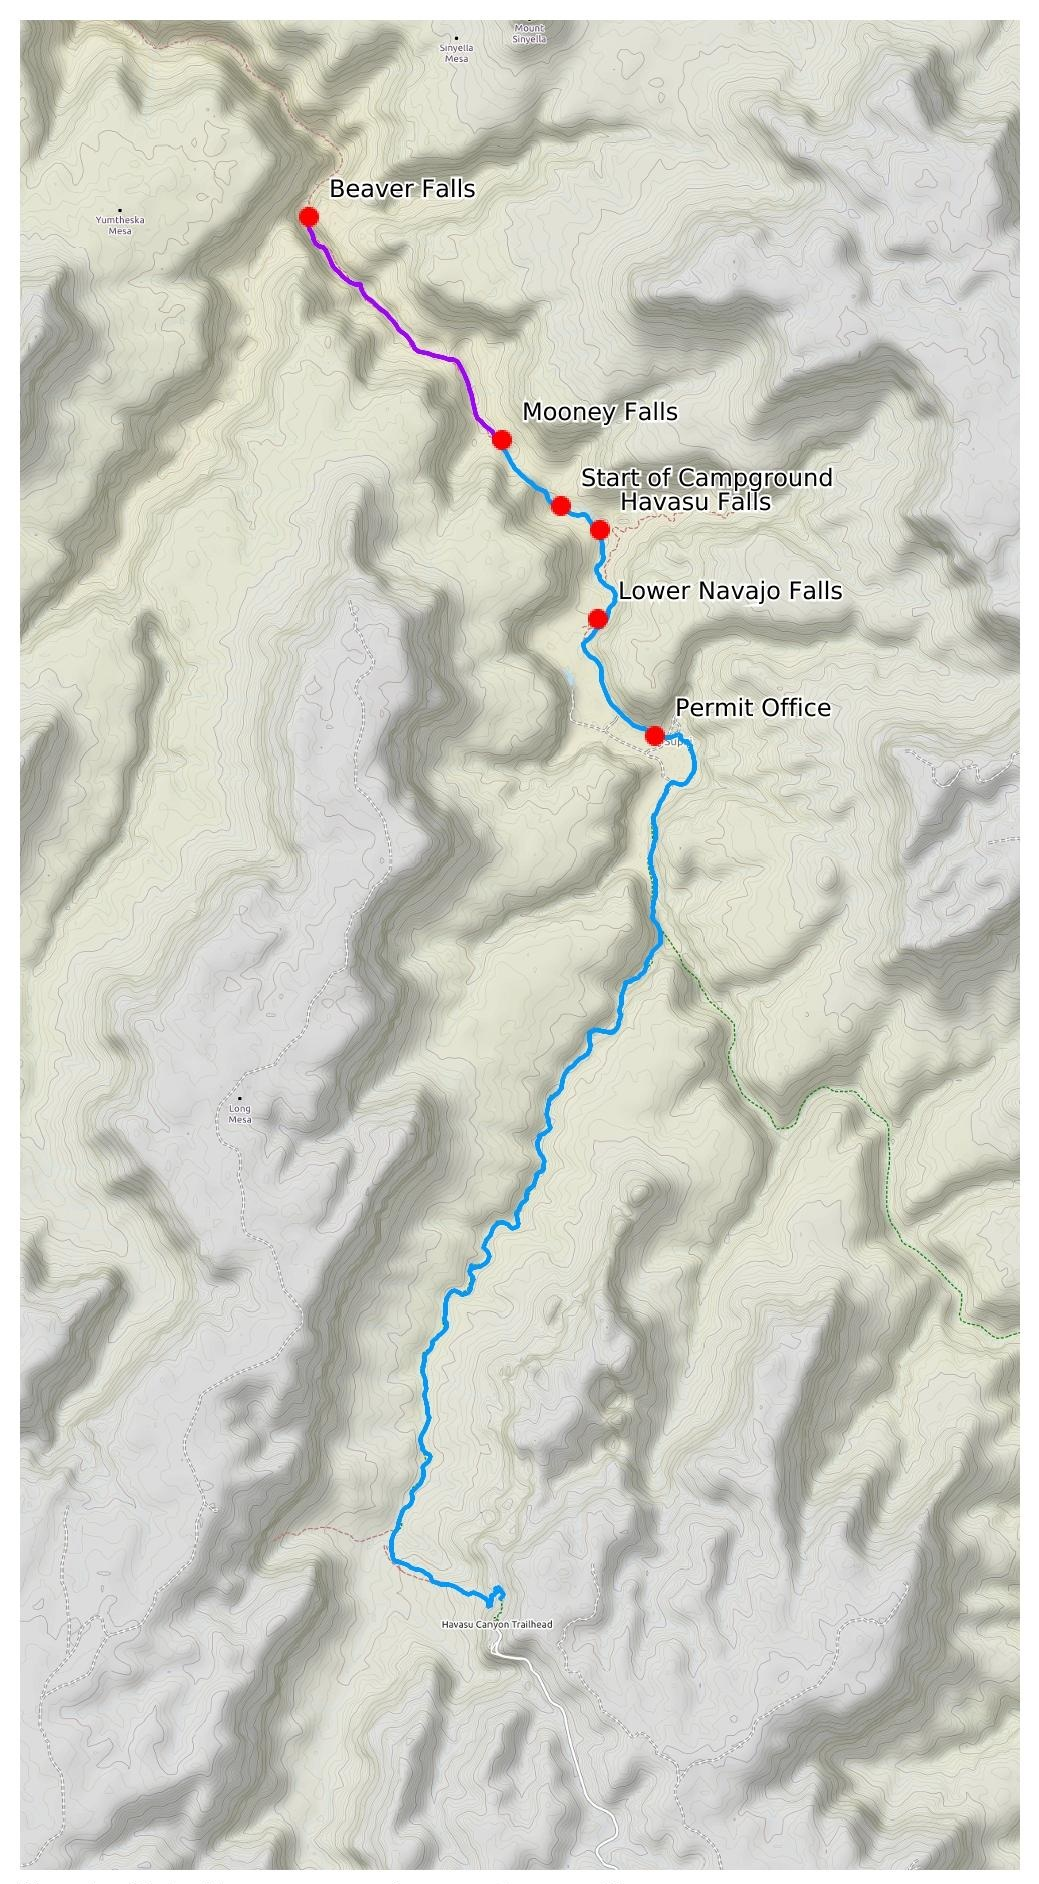 Trail map for our four day Havasu Backpacking trip, including a day hike down to Beaver Falls from the campground